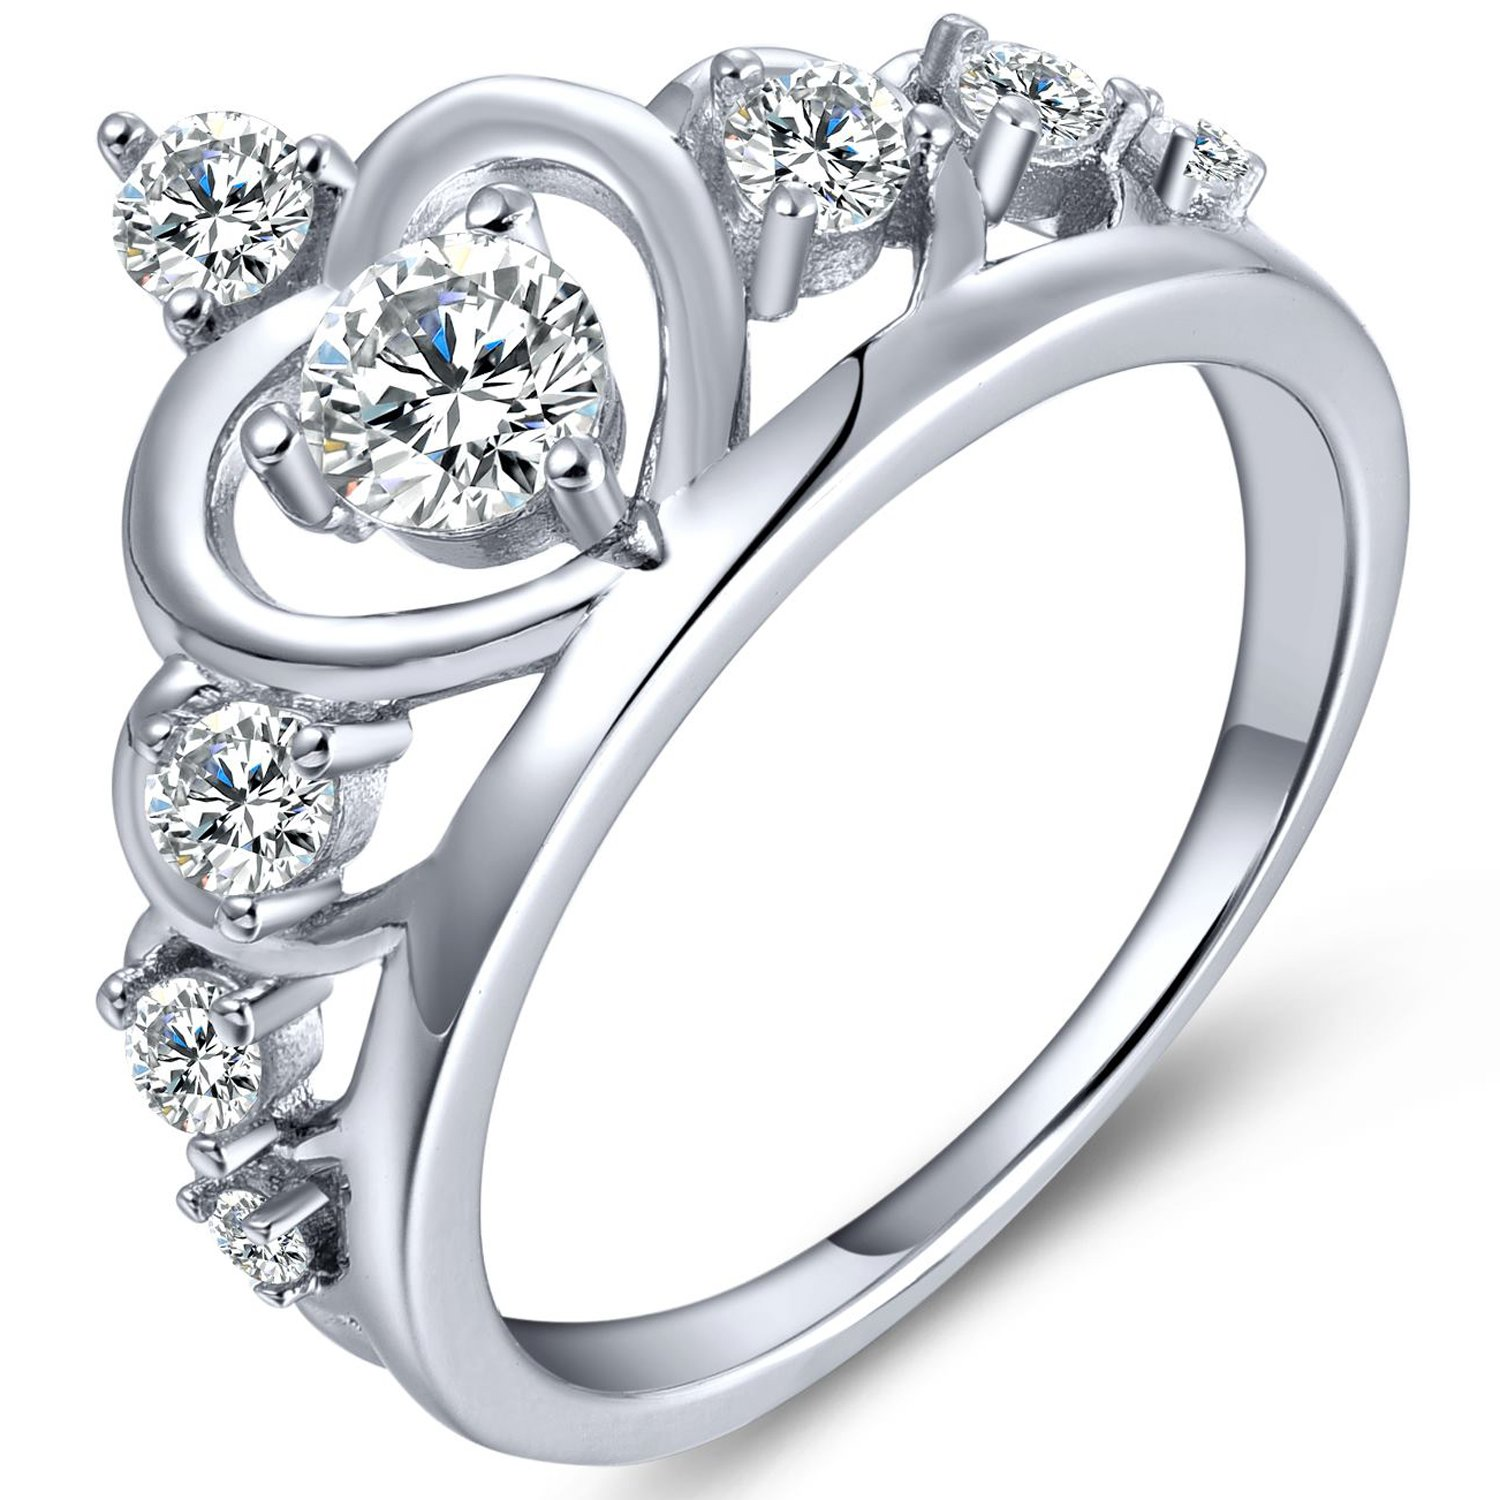 YL Women's Silver Queen Heart Crown Ring Anniversary 925 Sterling Silver Cubic Zirconia YL Jewelry